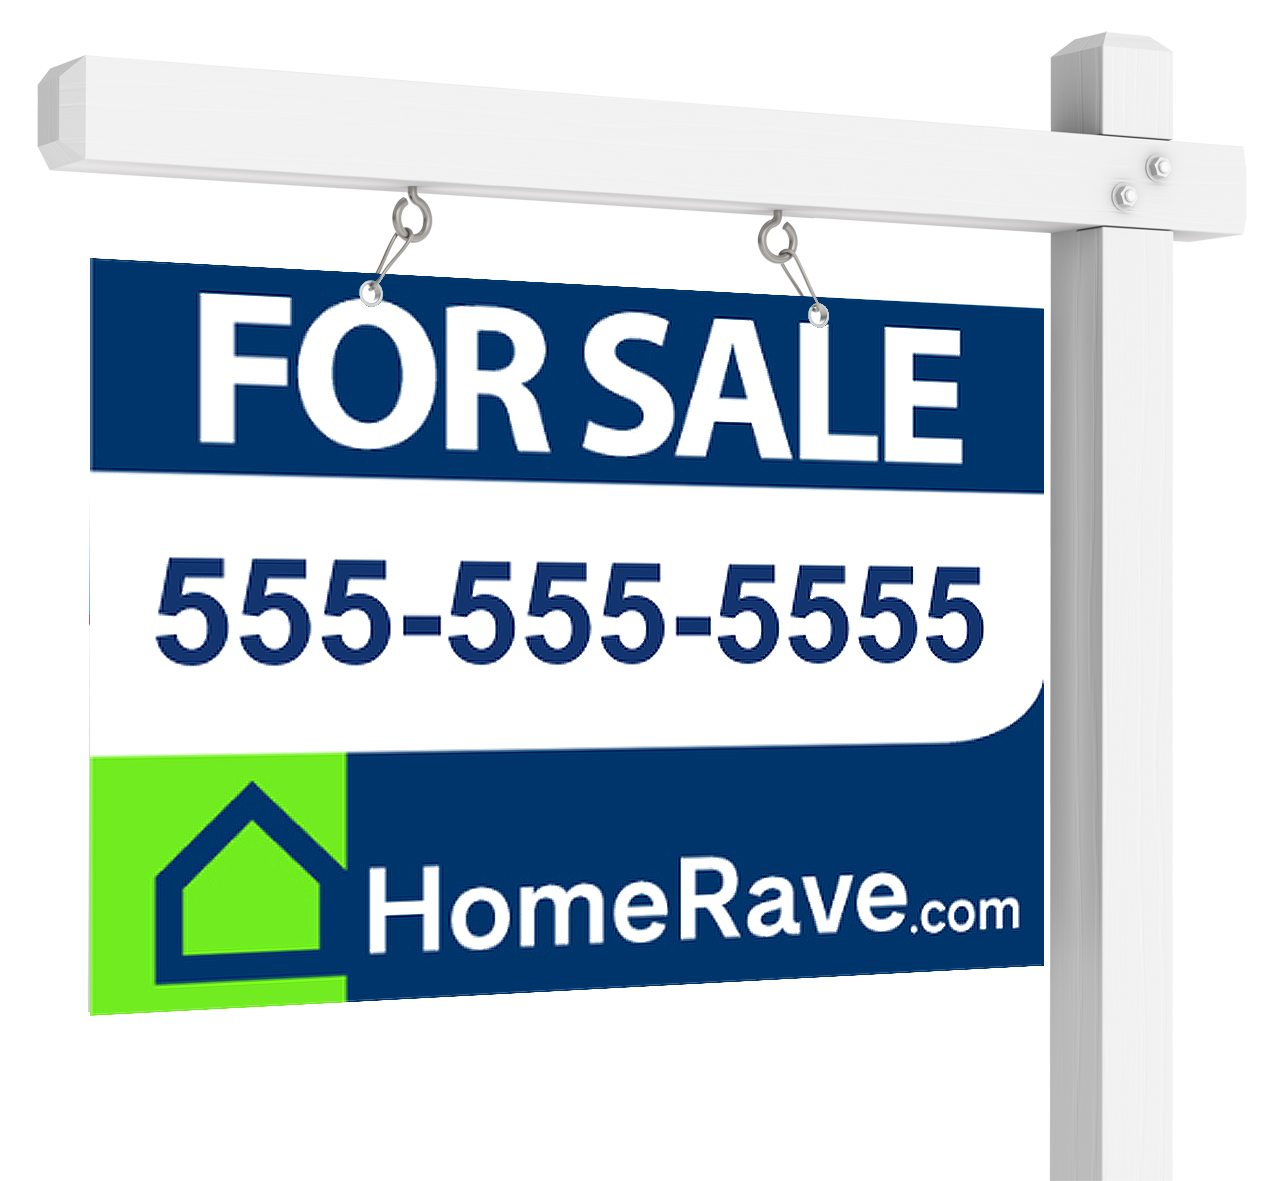 Flat Fee MLS Listing Home For Sale Post Yard Sign for FSBO Home Sellers VA Virginia